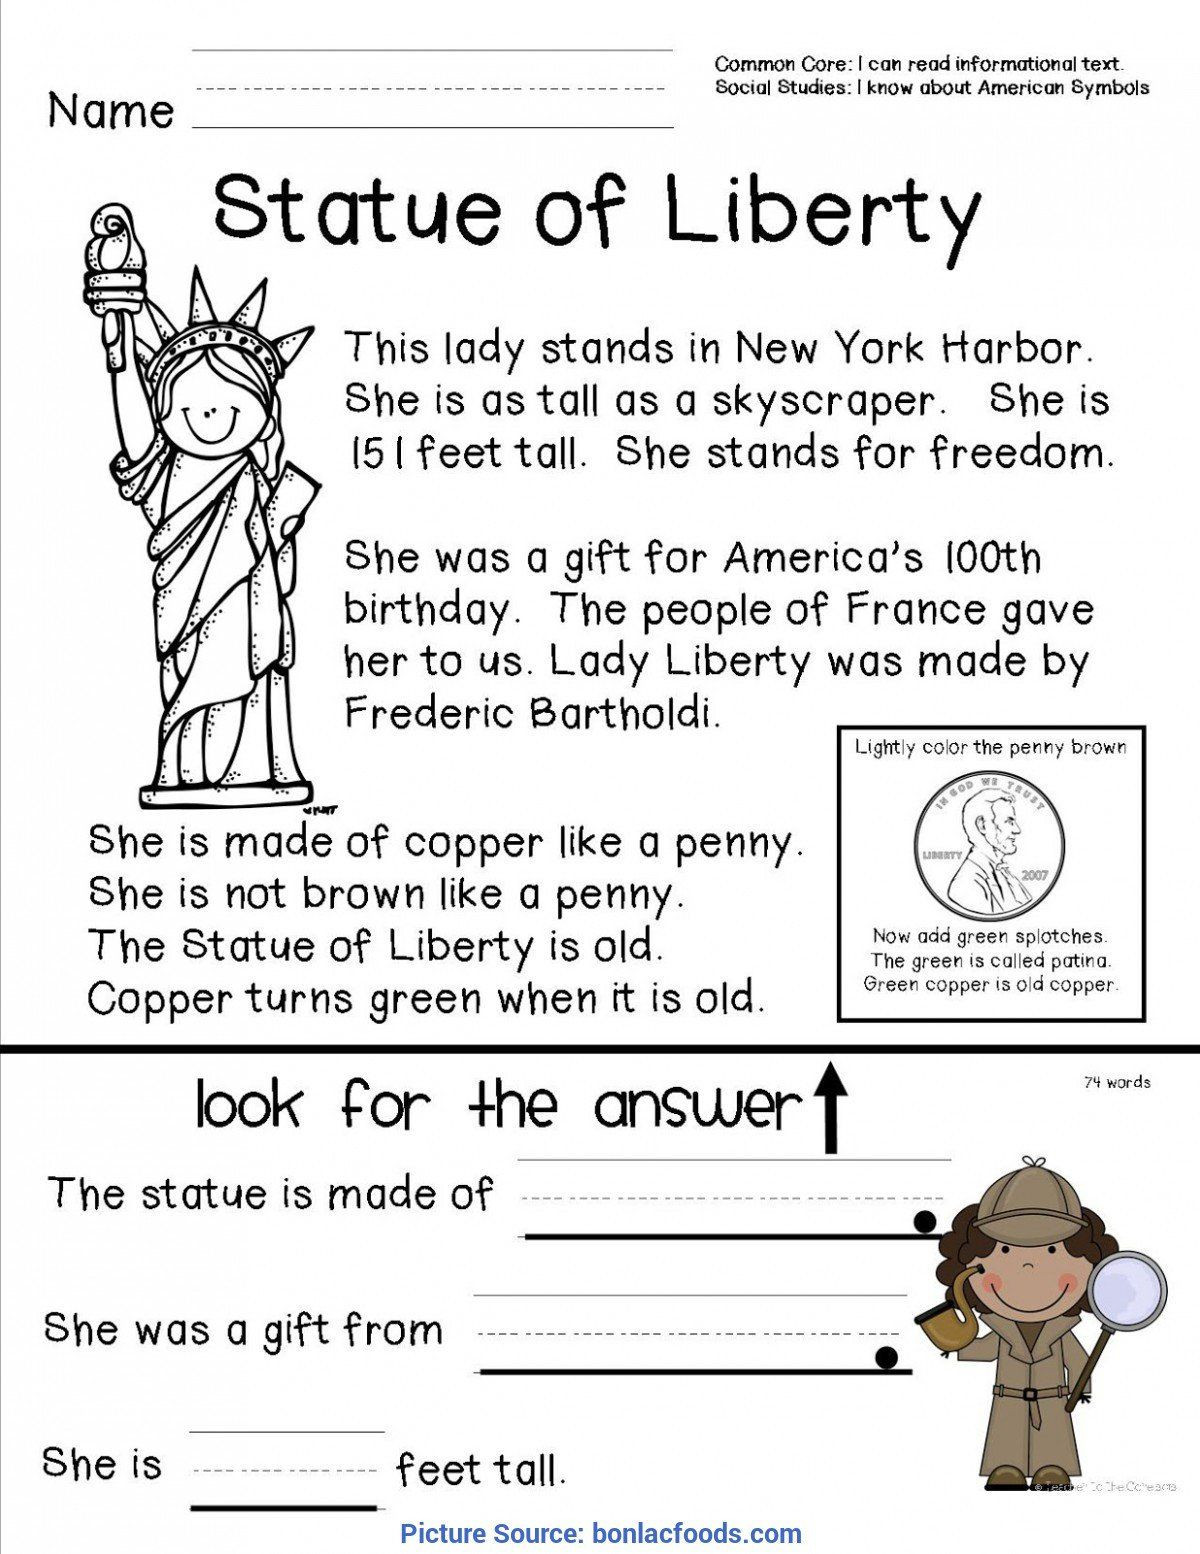 20 History Worksheets For 2nd Grade